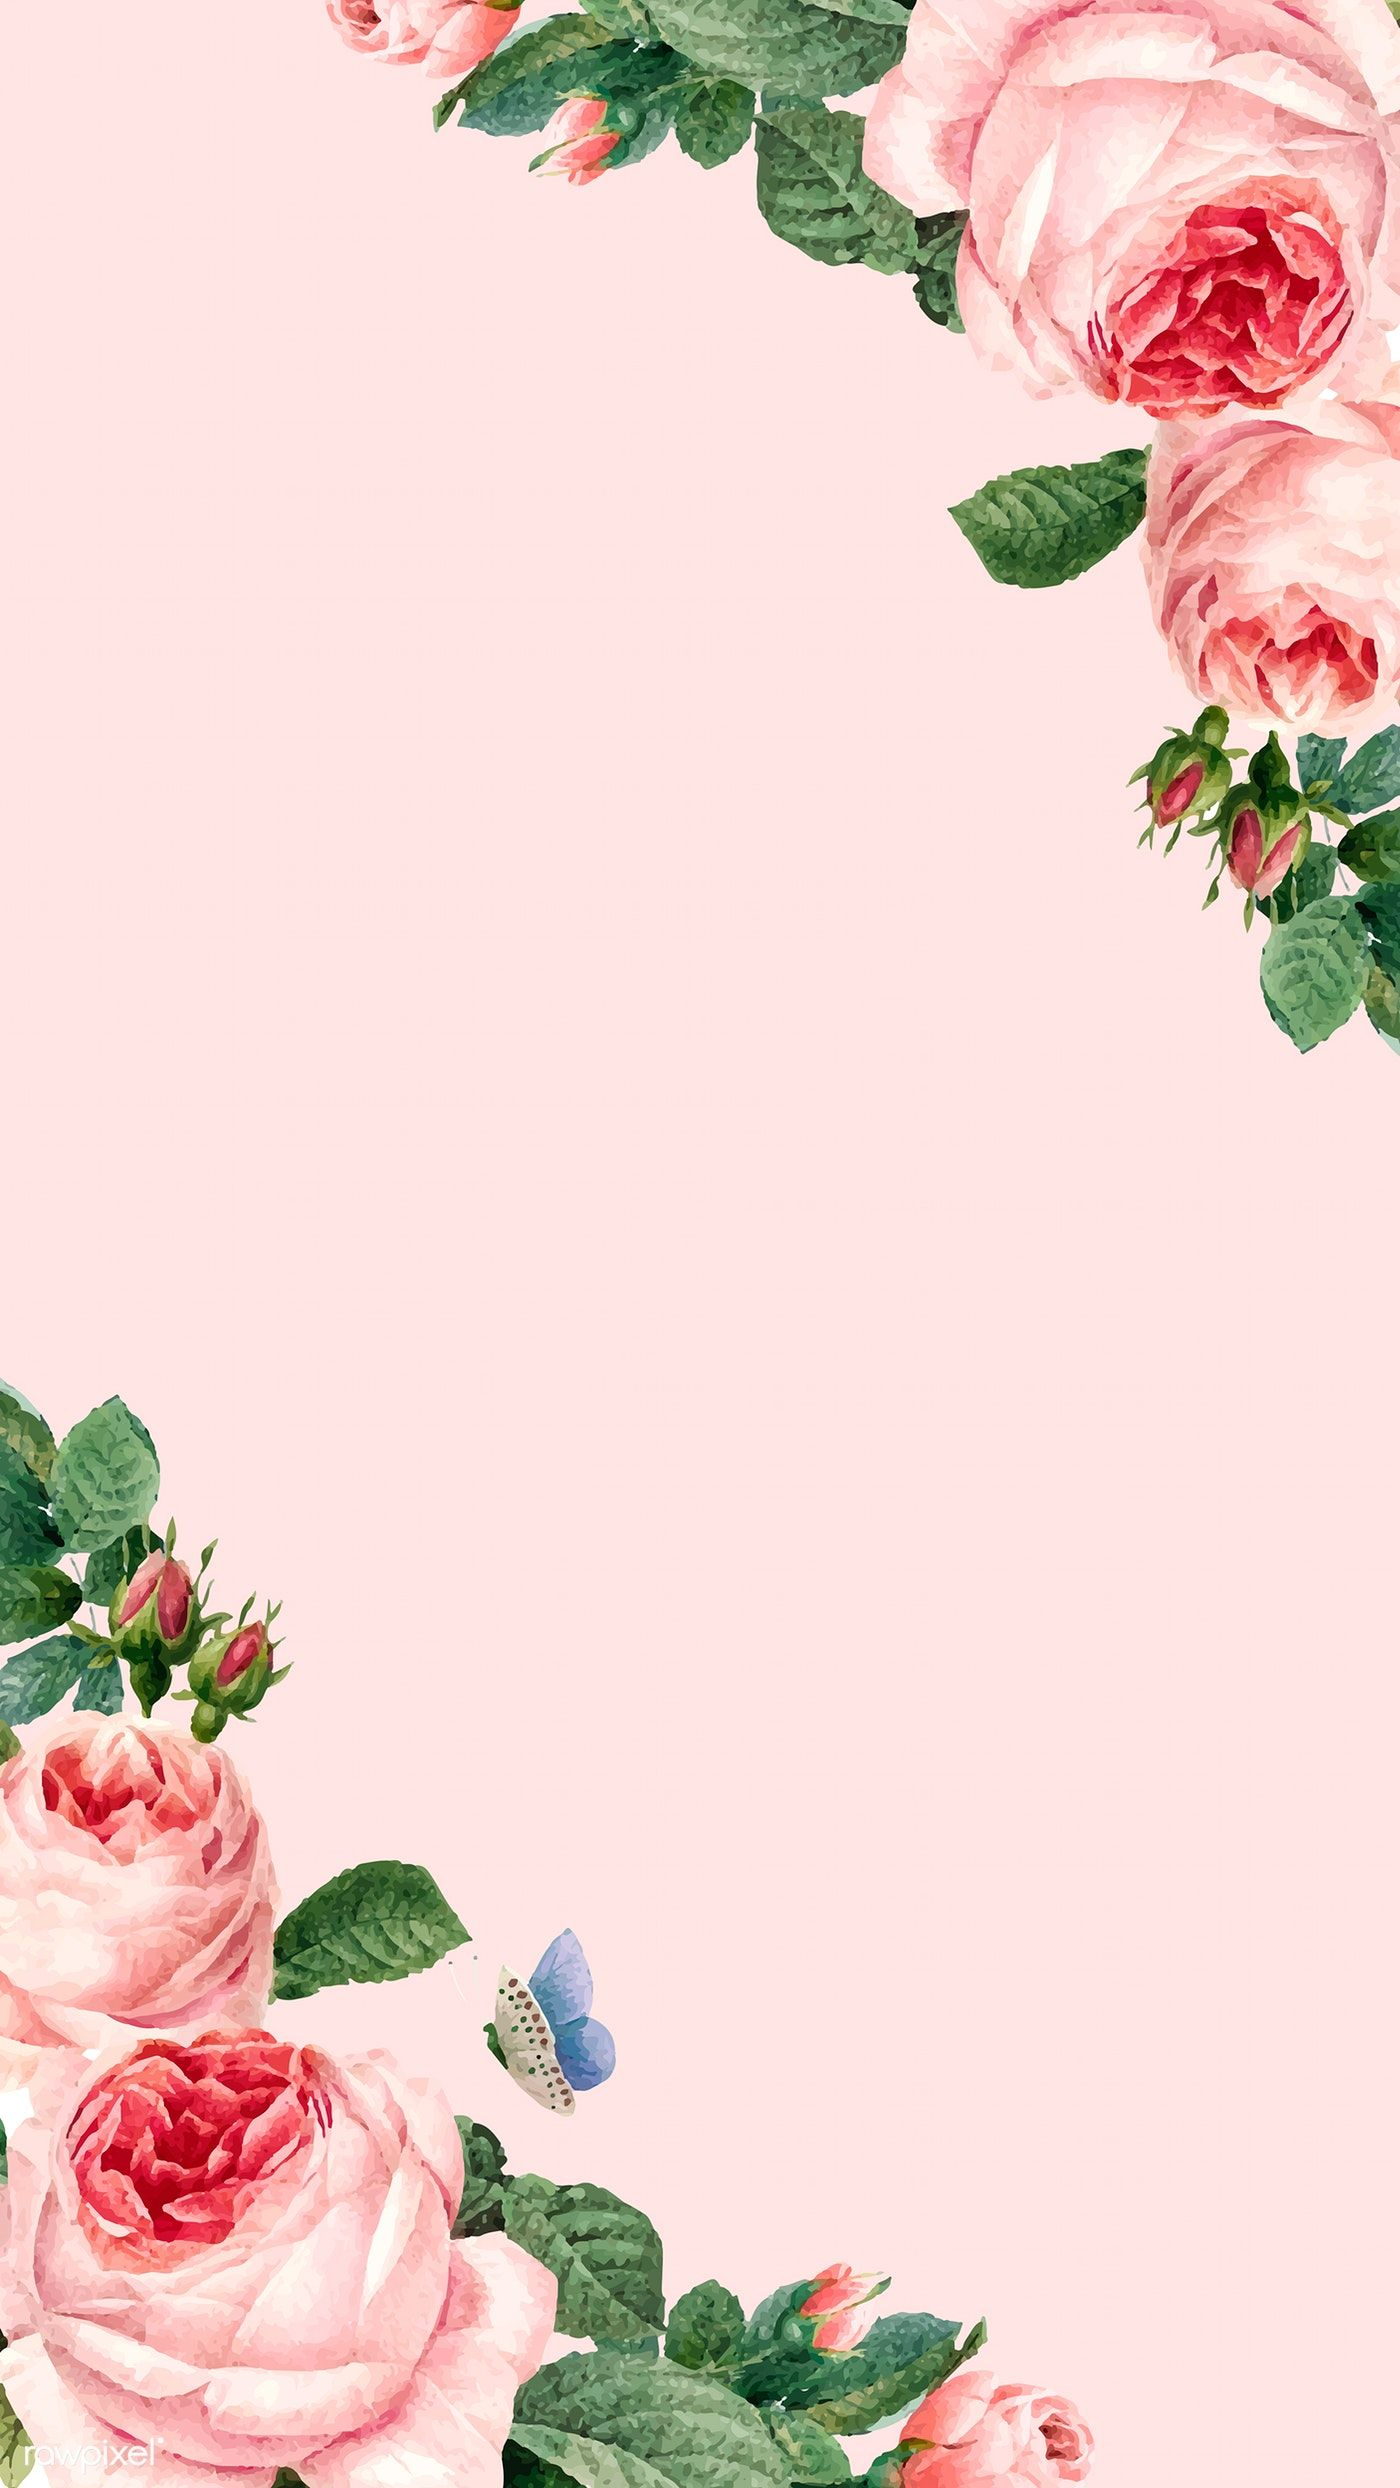 Hand Drawn Pink Roses Frame On Pastel Pink Background Vector Free Image By Rawpixel In 2020 Flower Background Wallpaper Pink Flowers Wallpaper Pink Floral Background